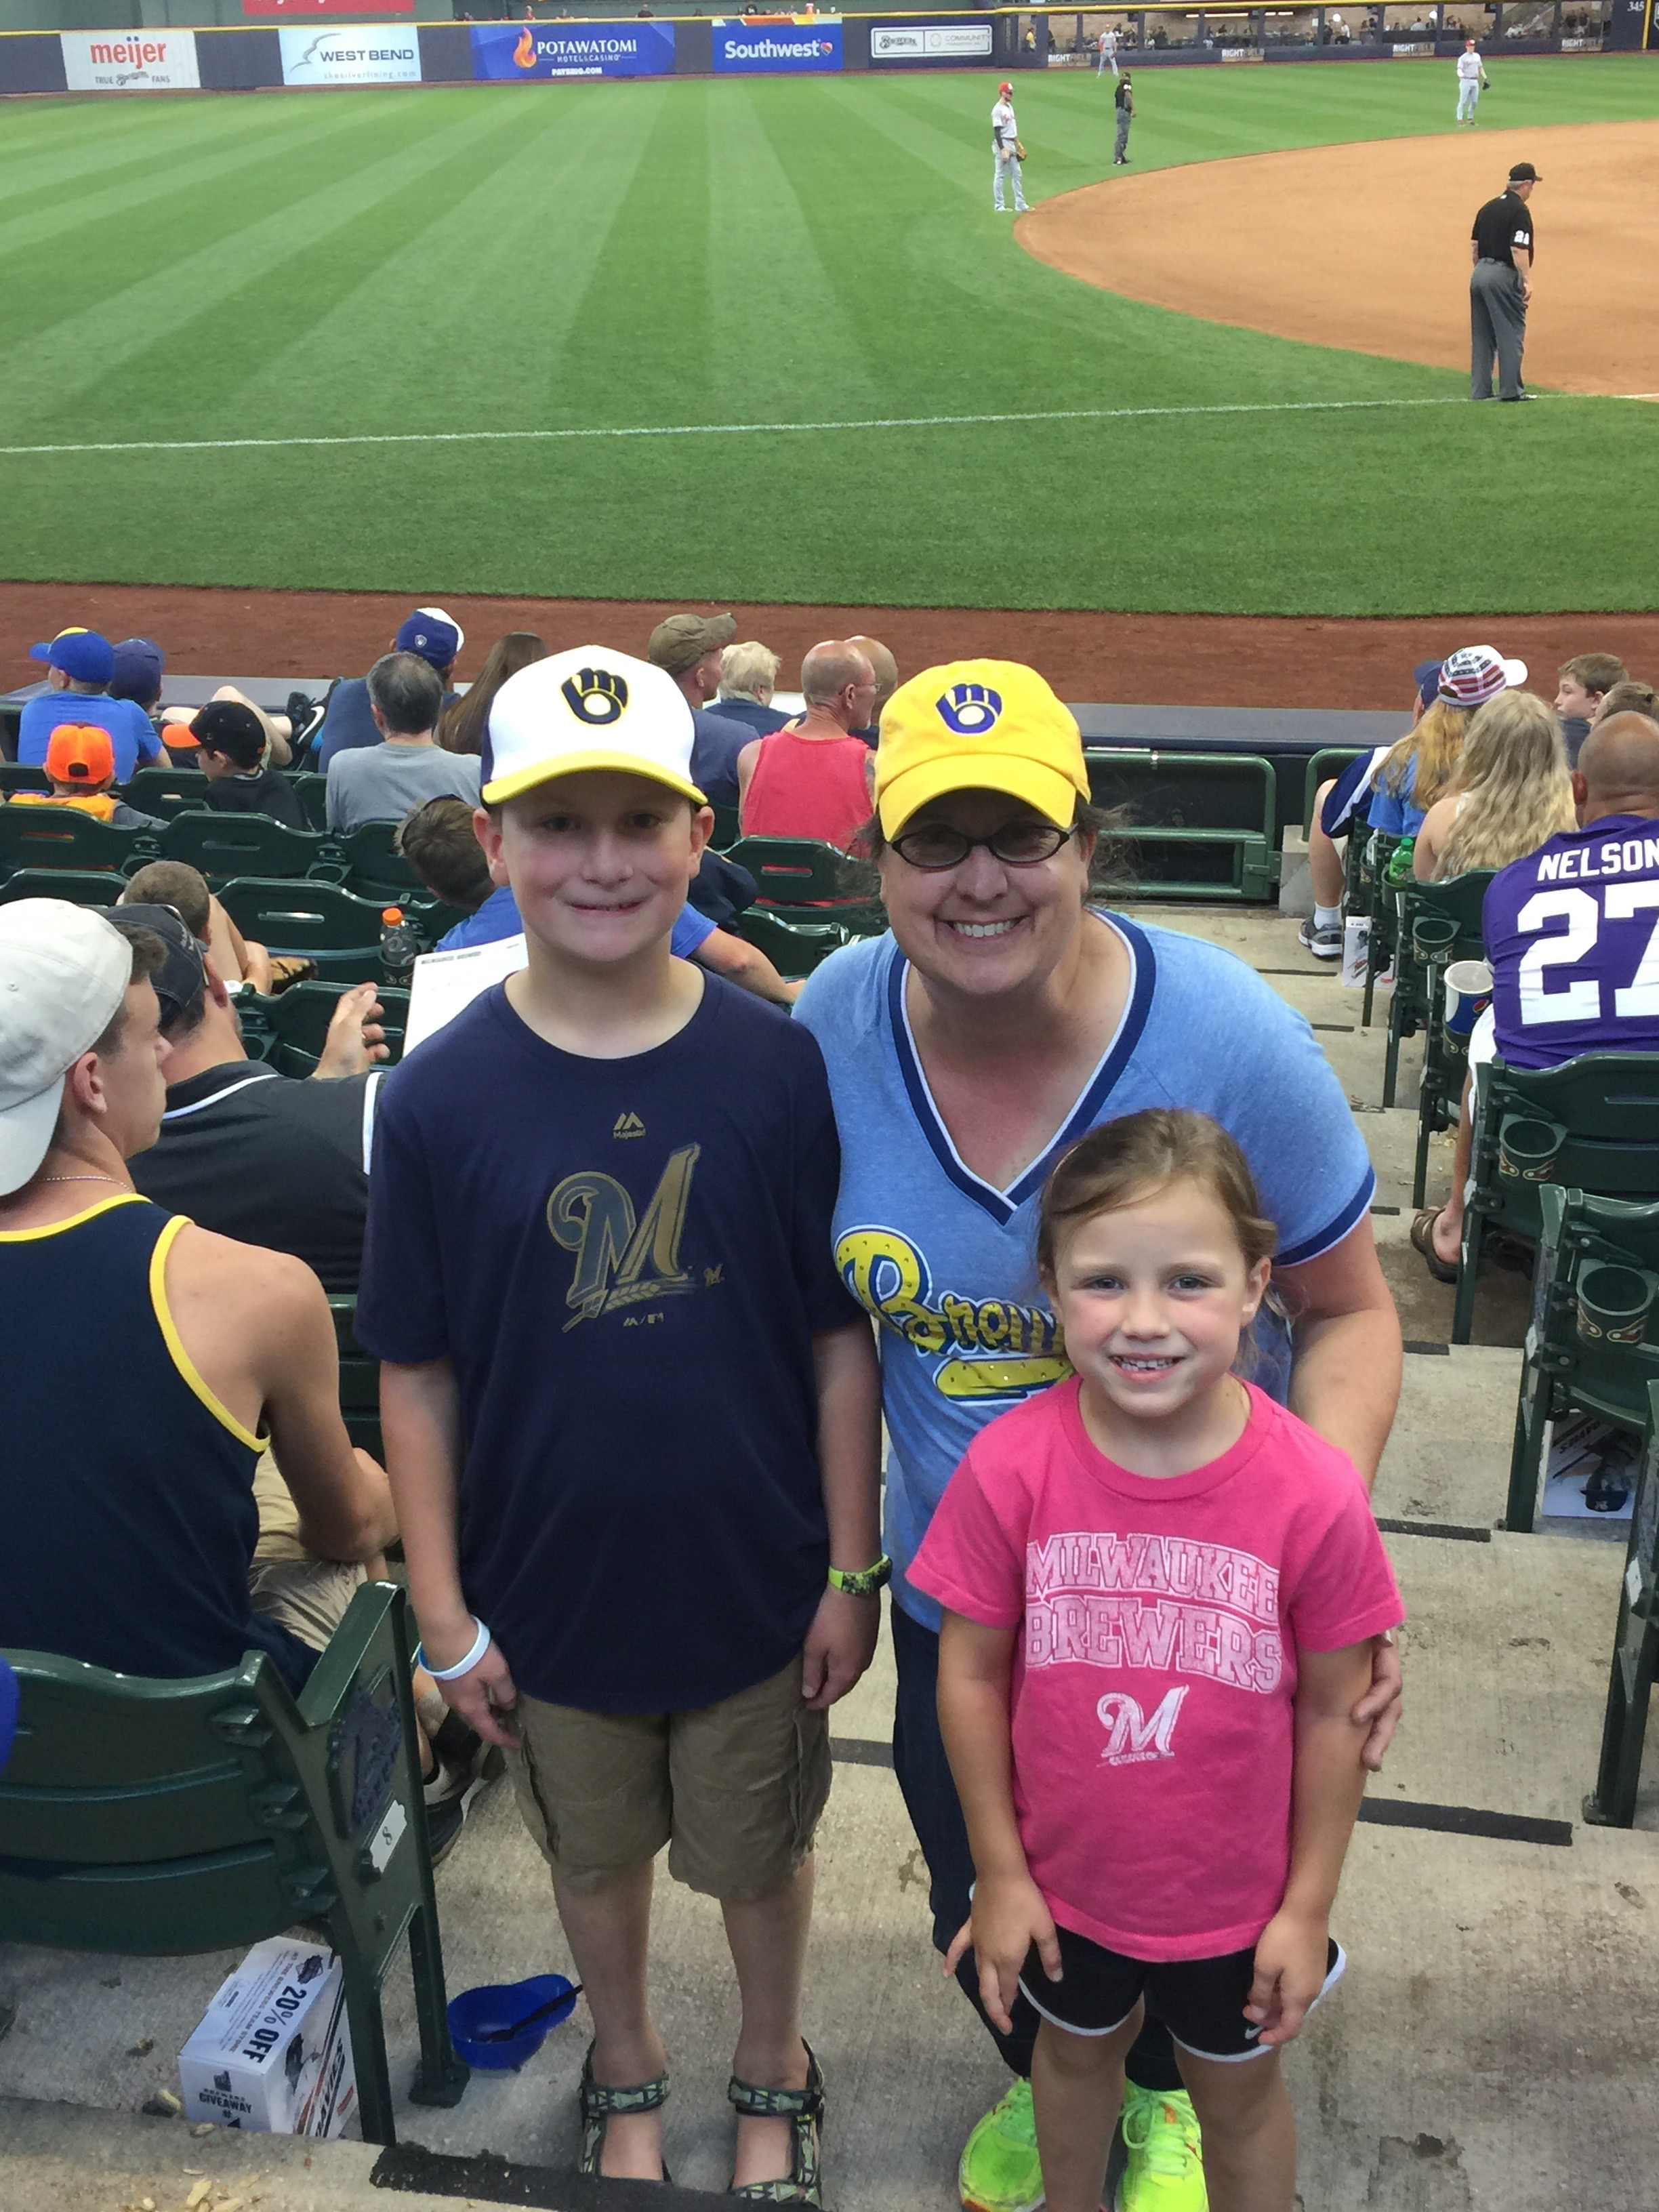 Going to baseball games with our family is one of our favorite things to do!